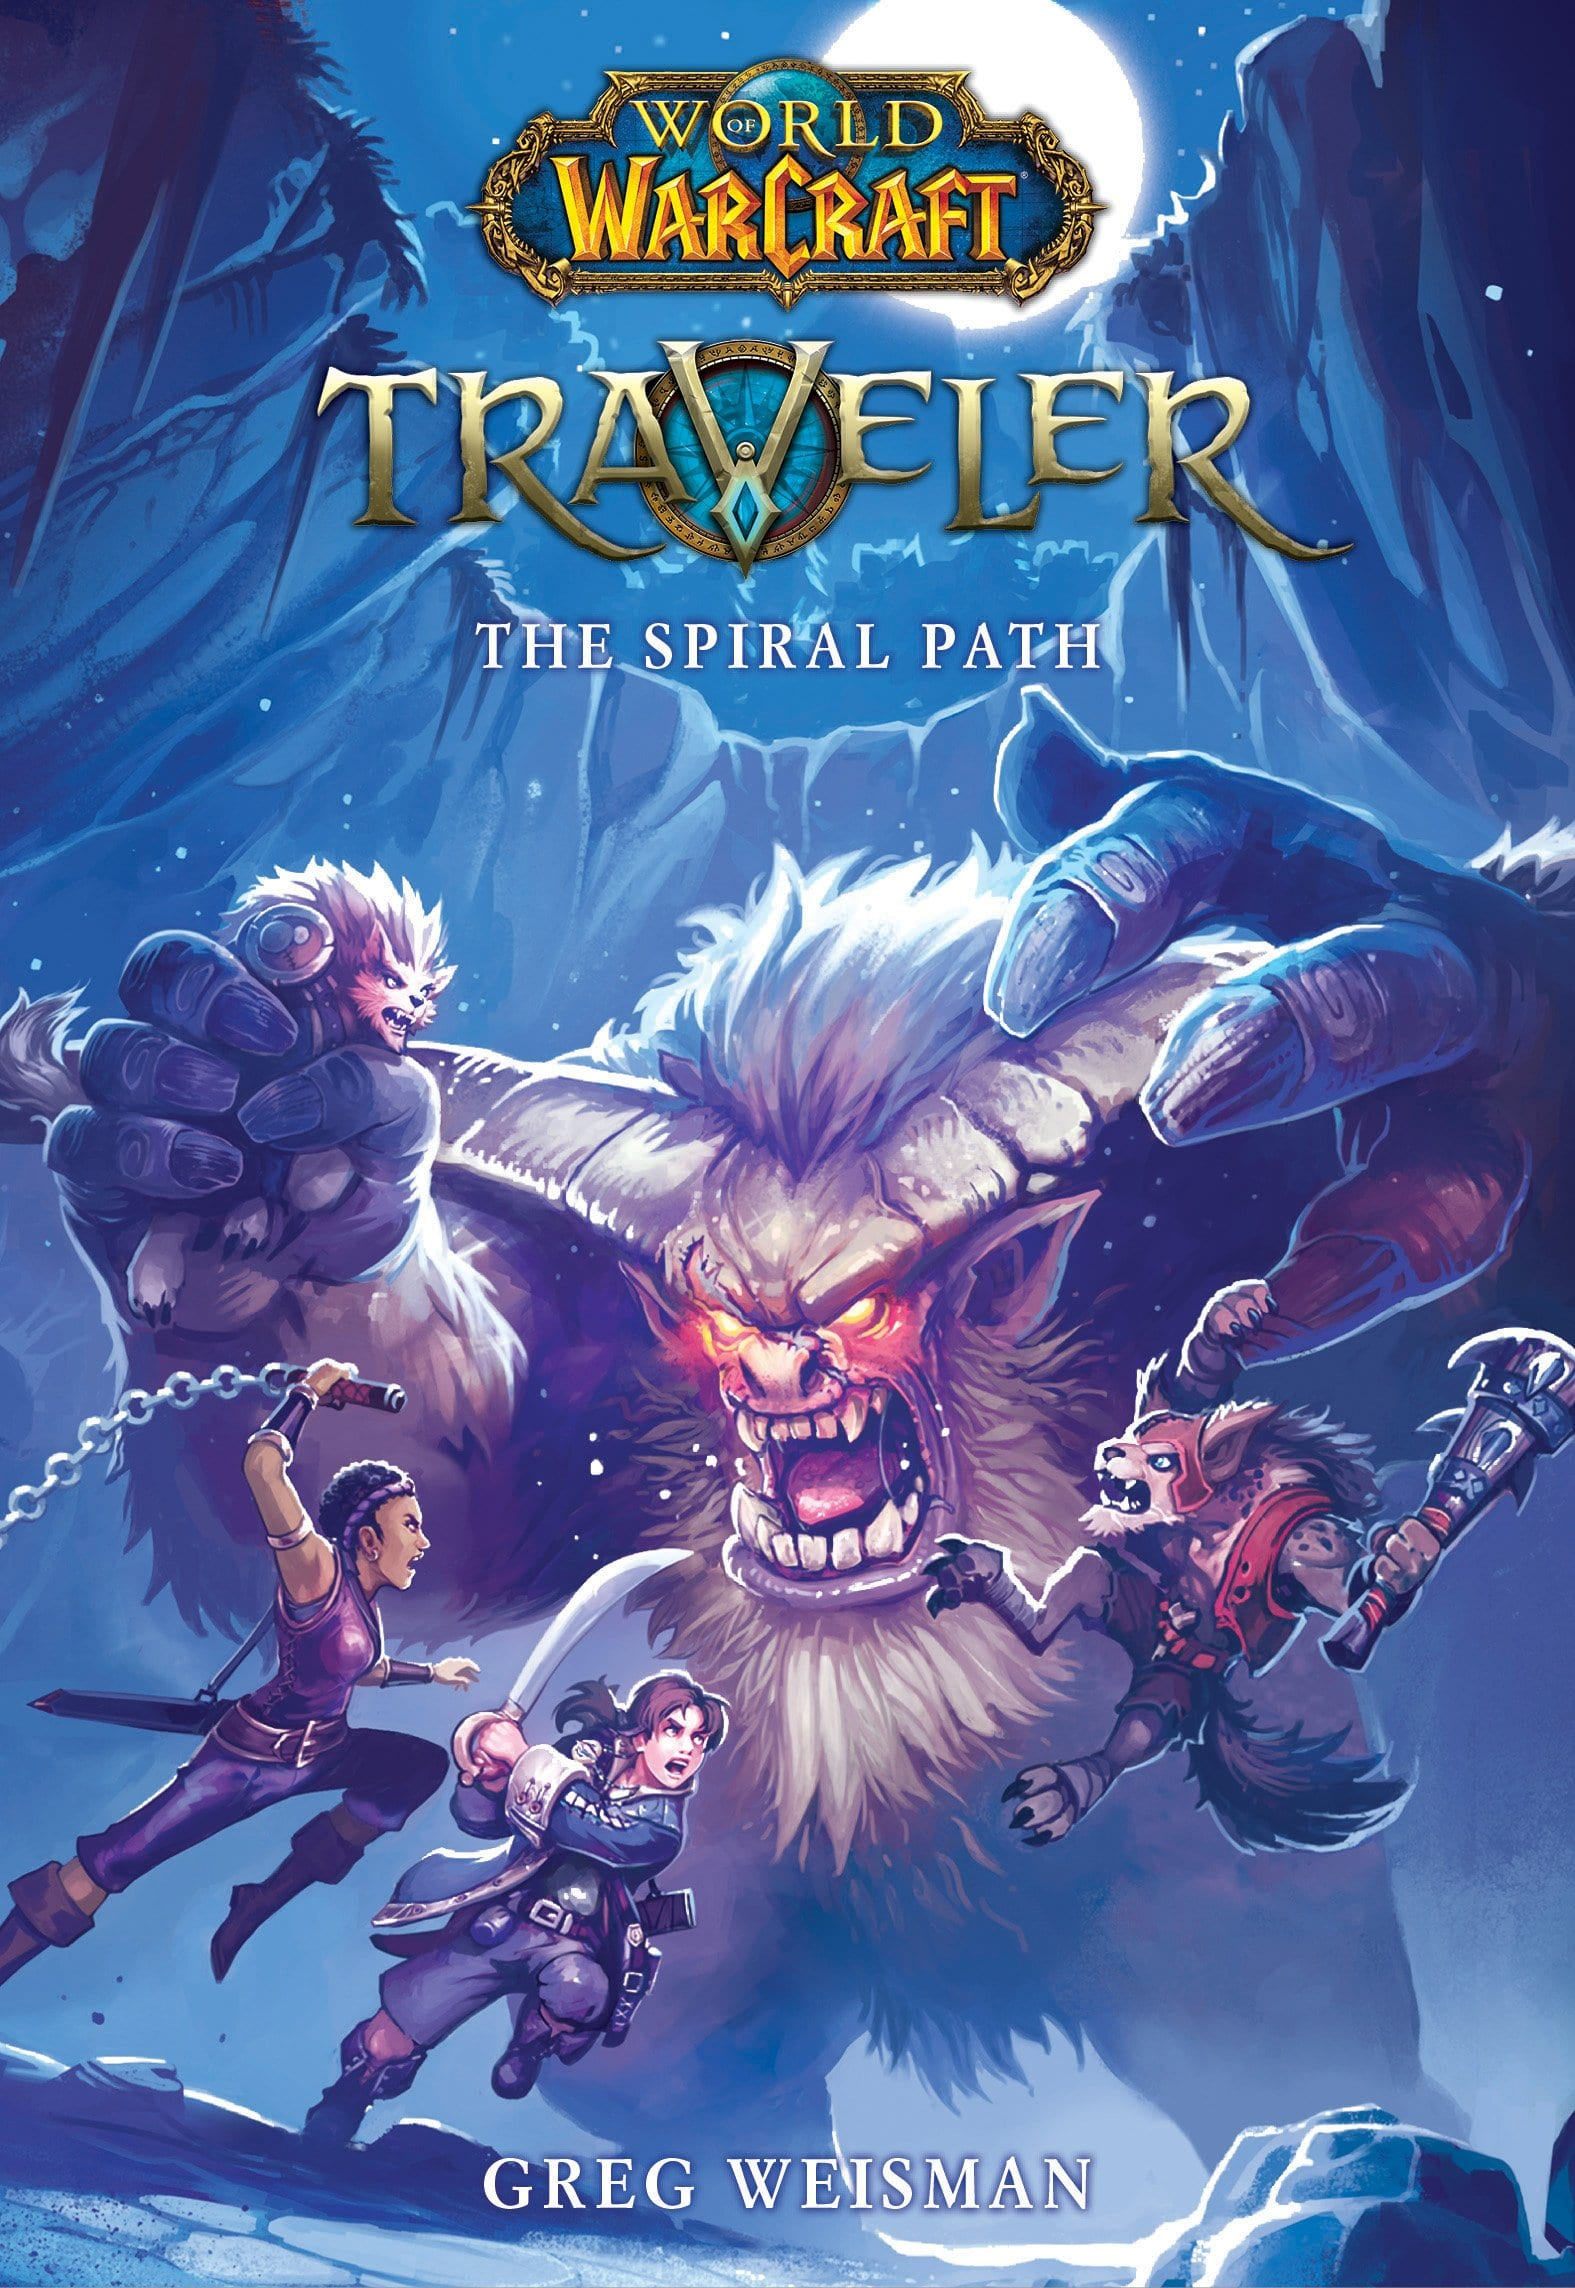 Libros Wow Traveler The Spiral Path A La Venta El 27 De Febrero De